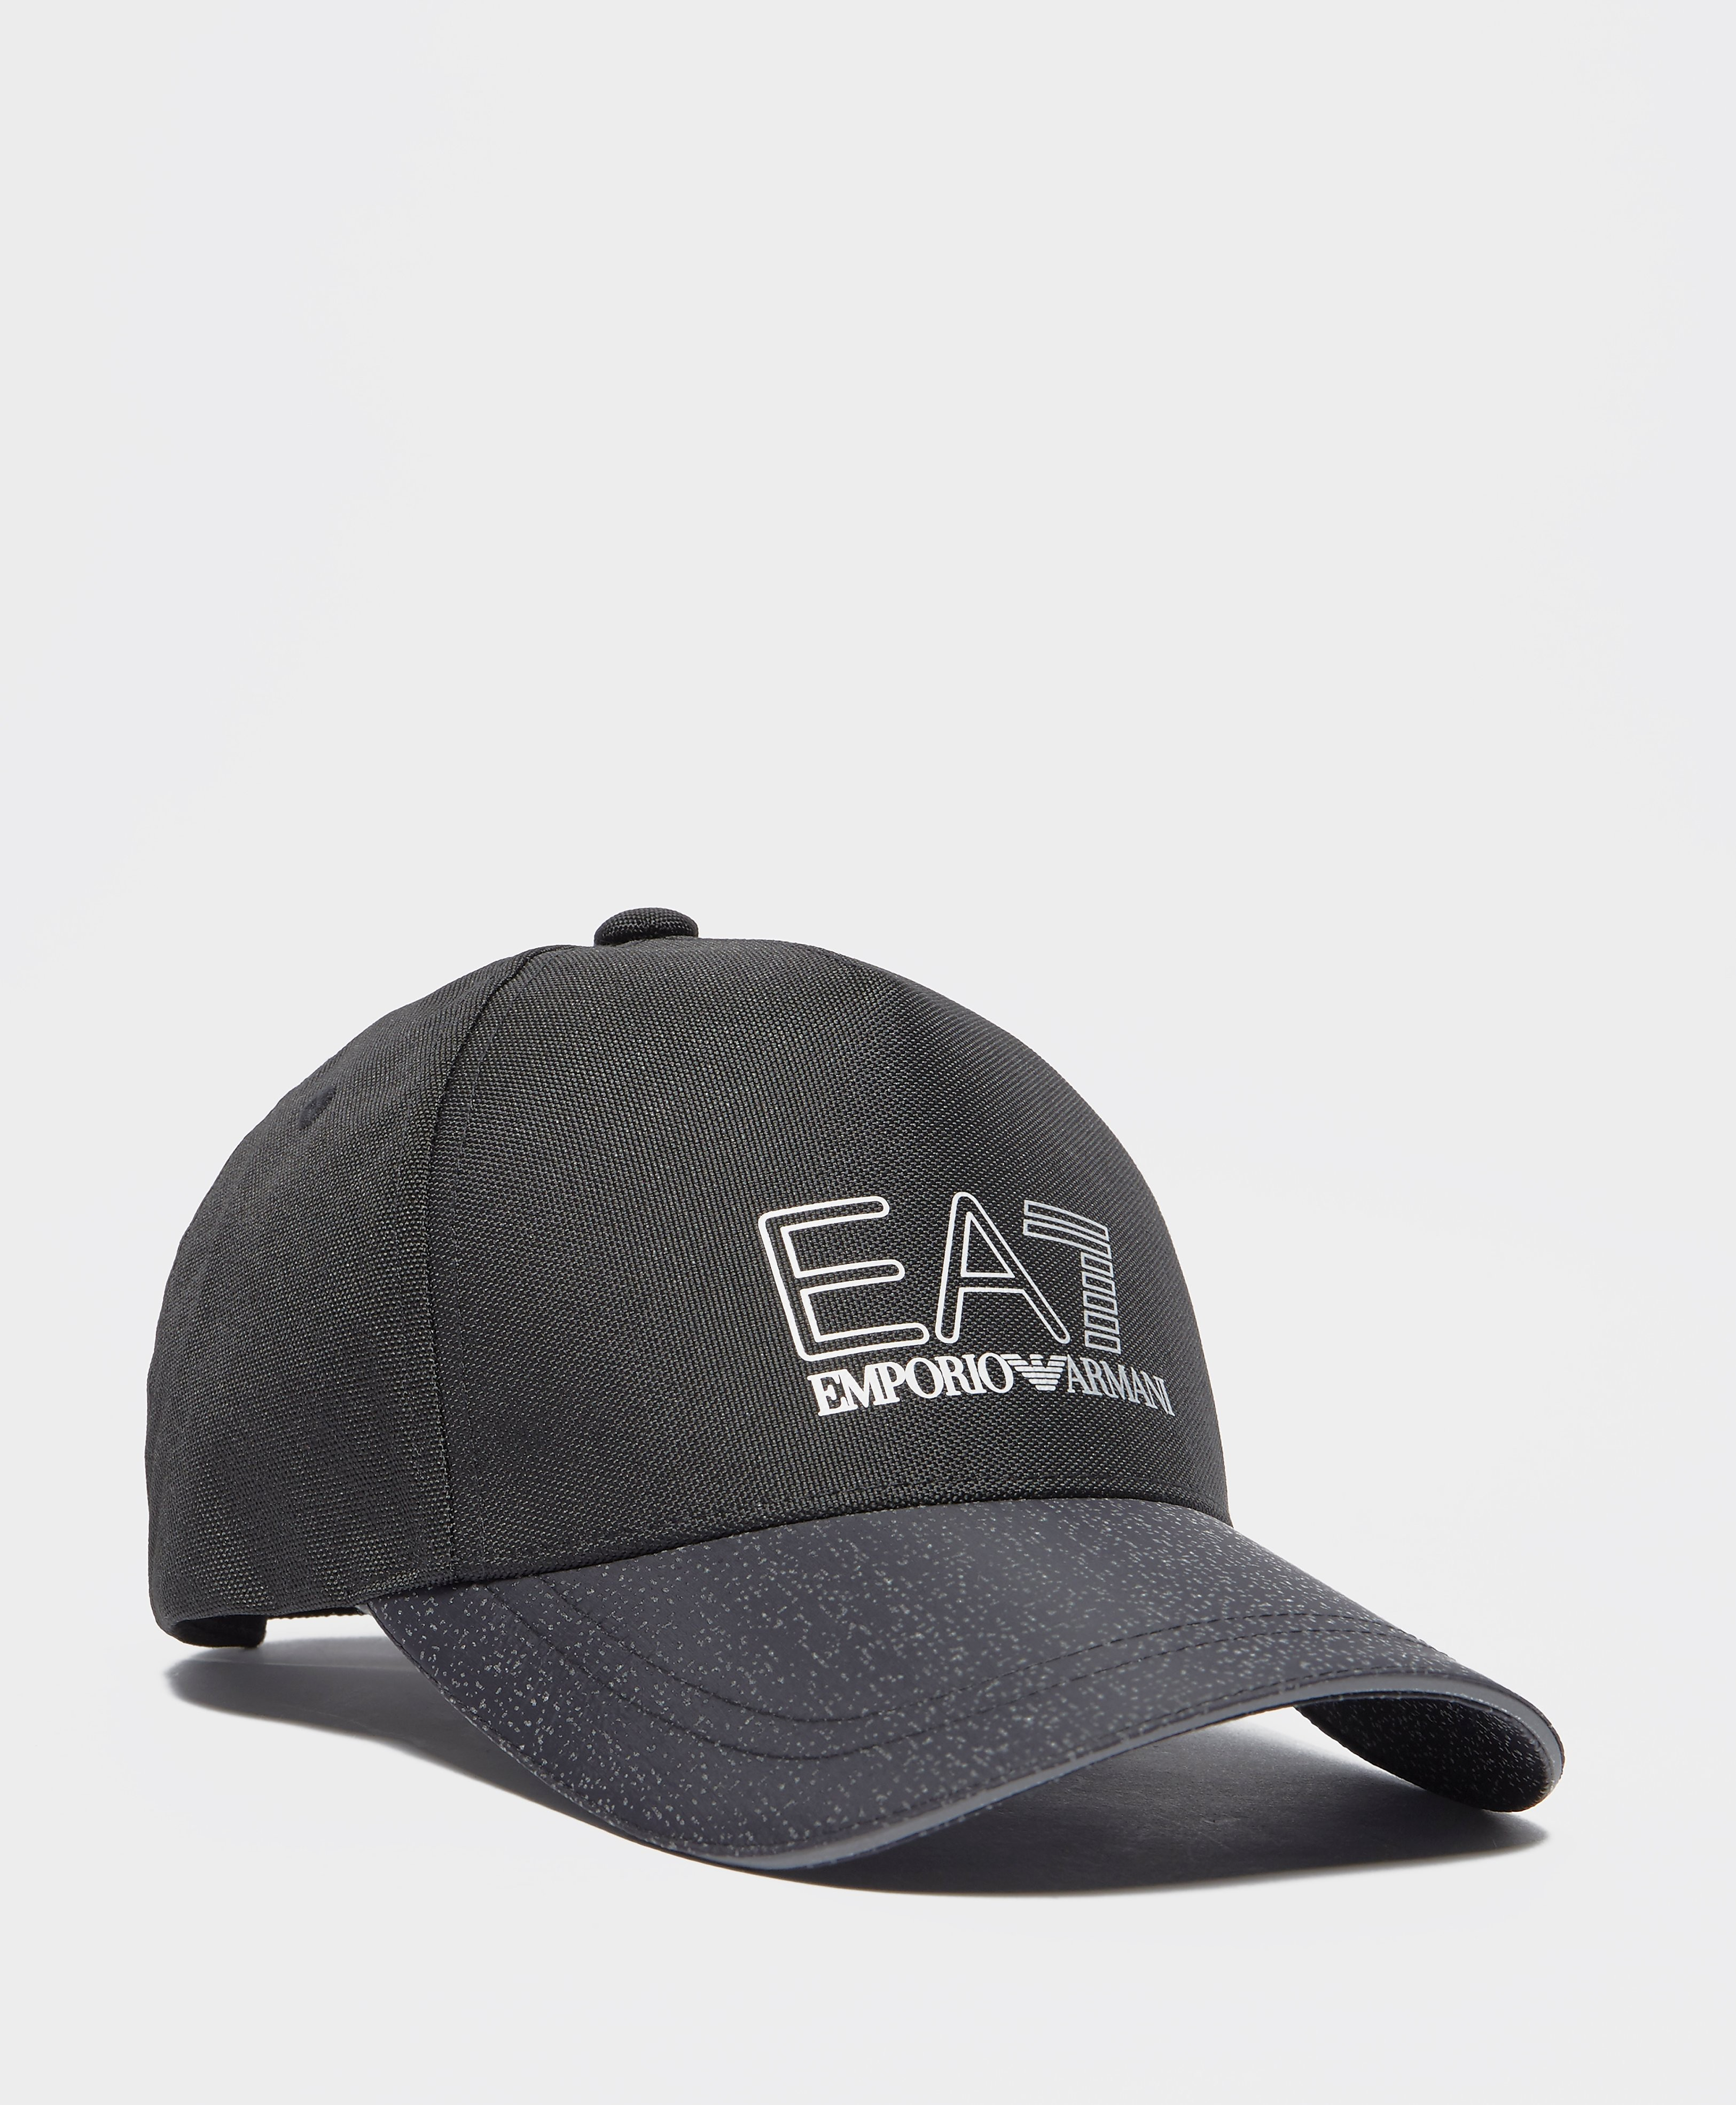 Emporio Armani EA7 Train 7.0 Cap